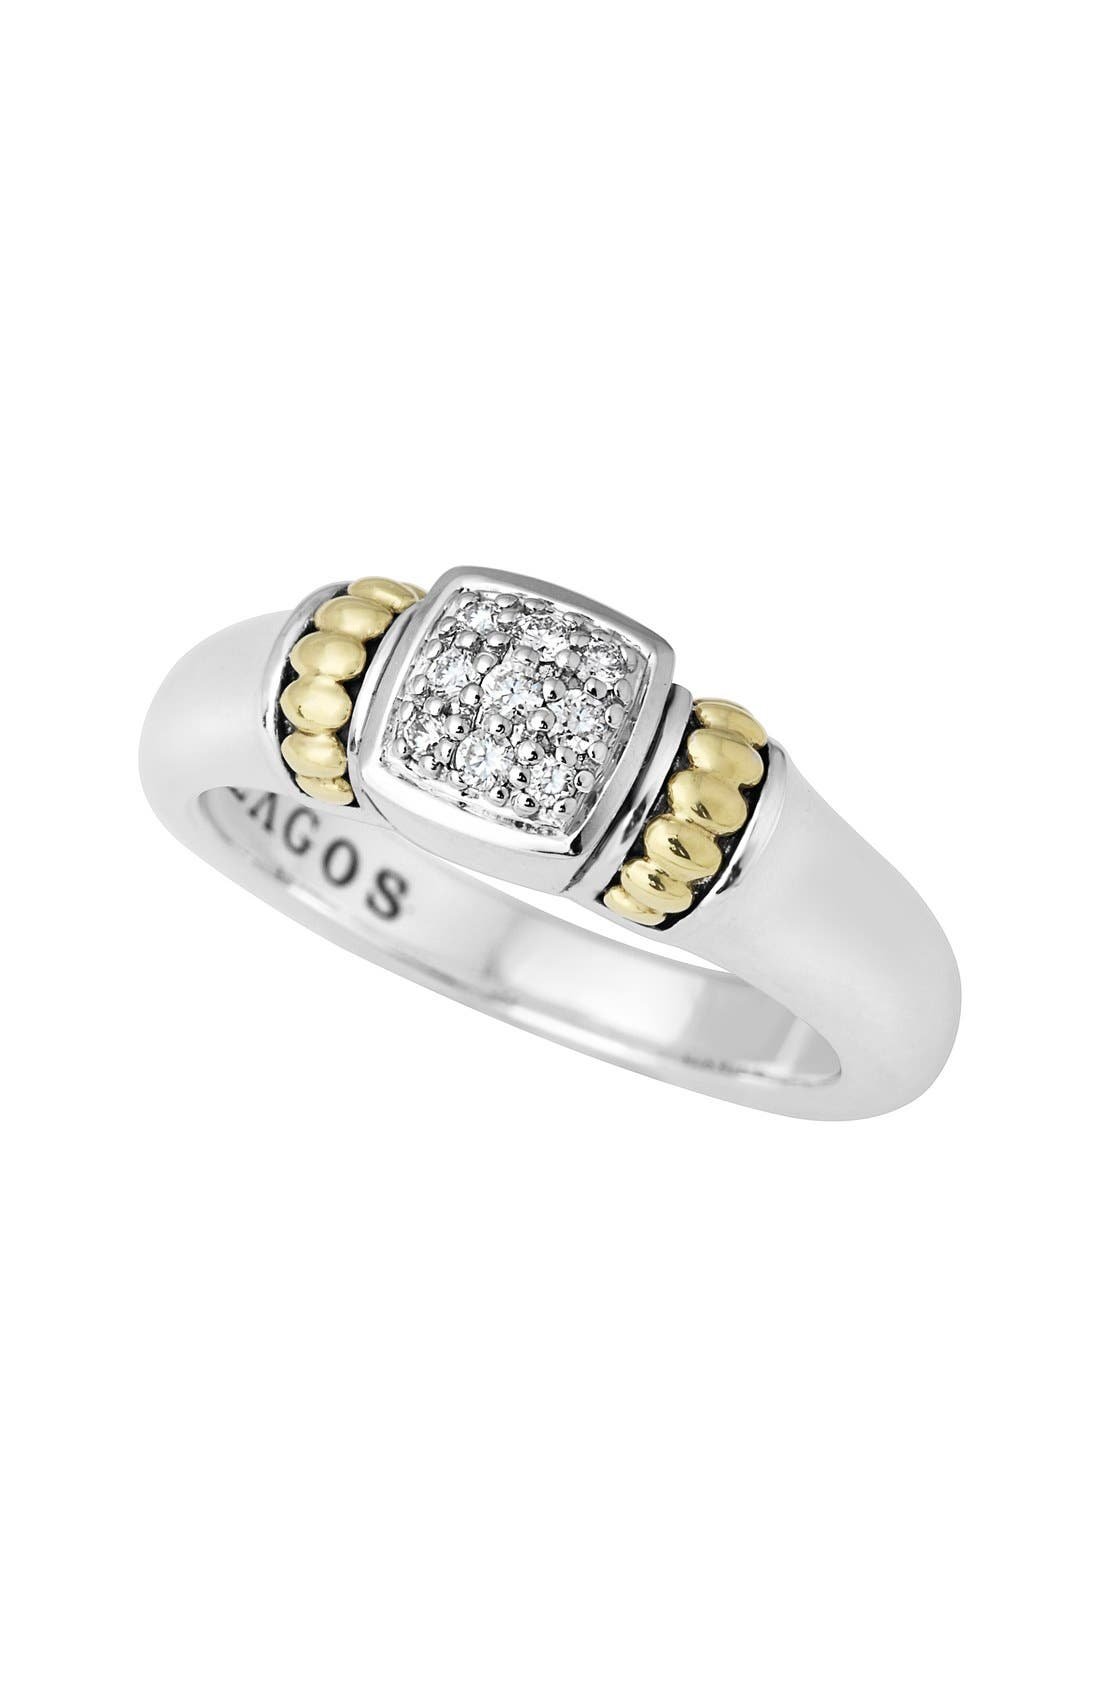 Main Image - LAGOS Caviar Diamond Ring